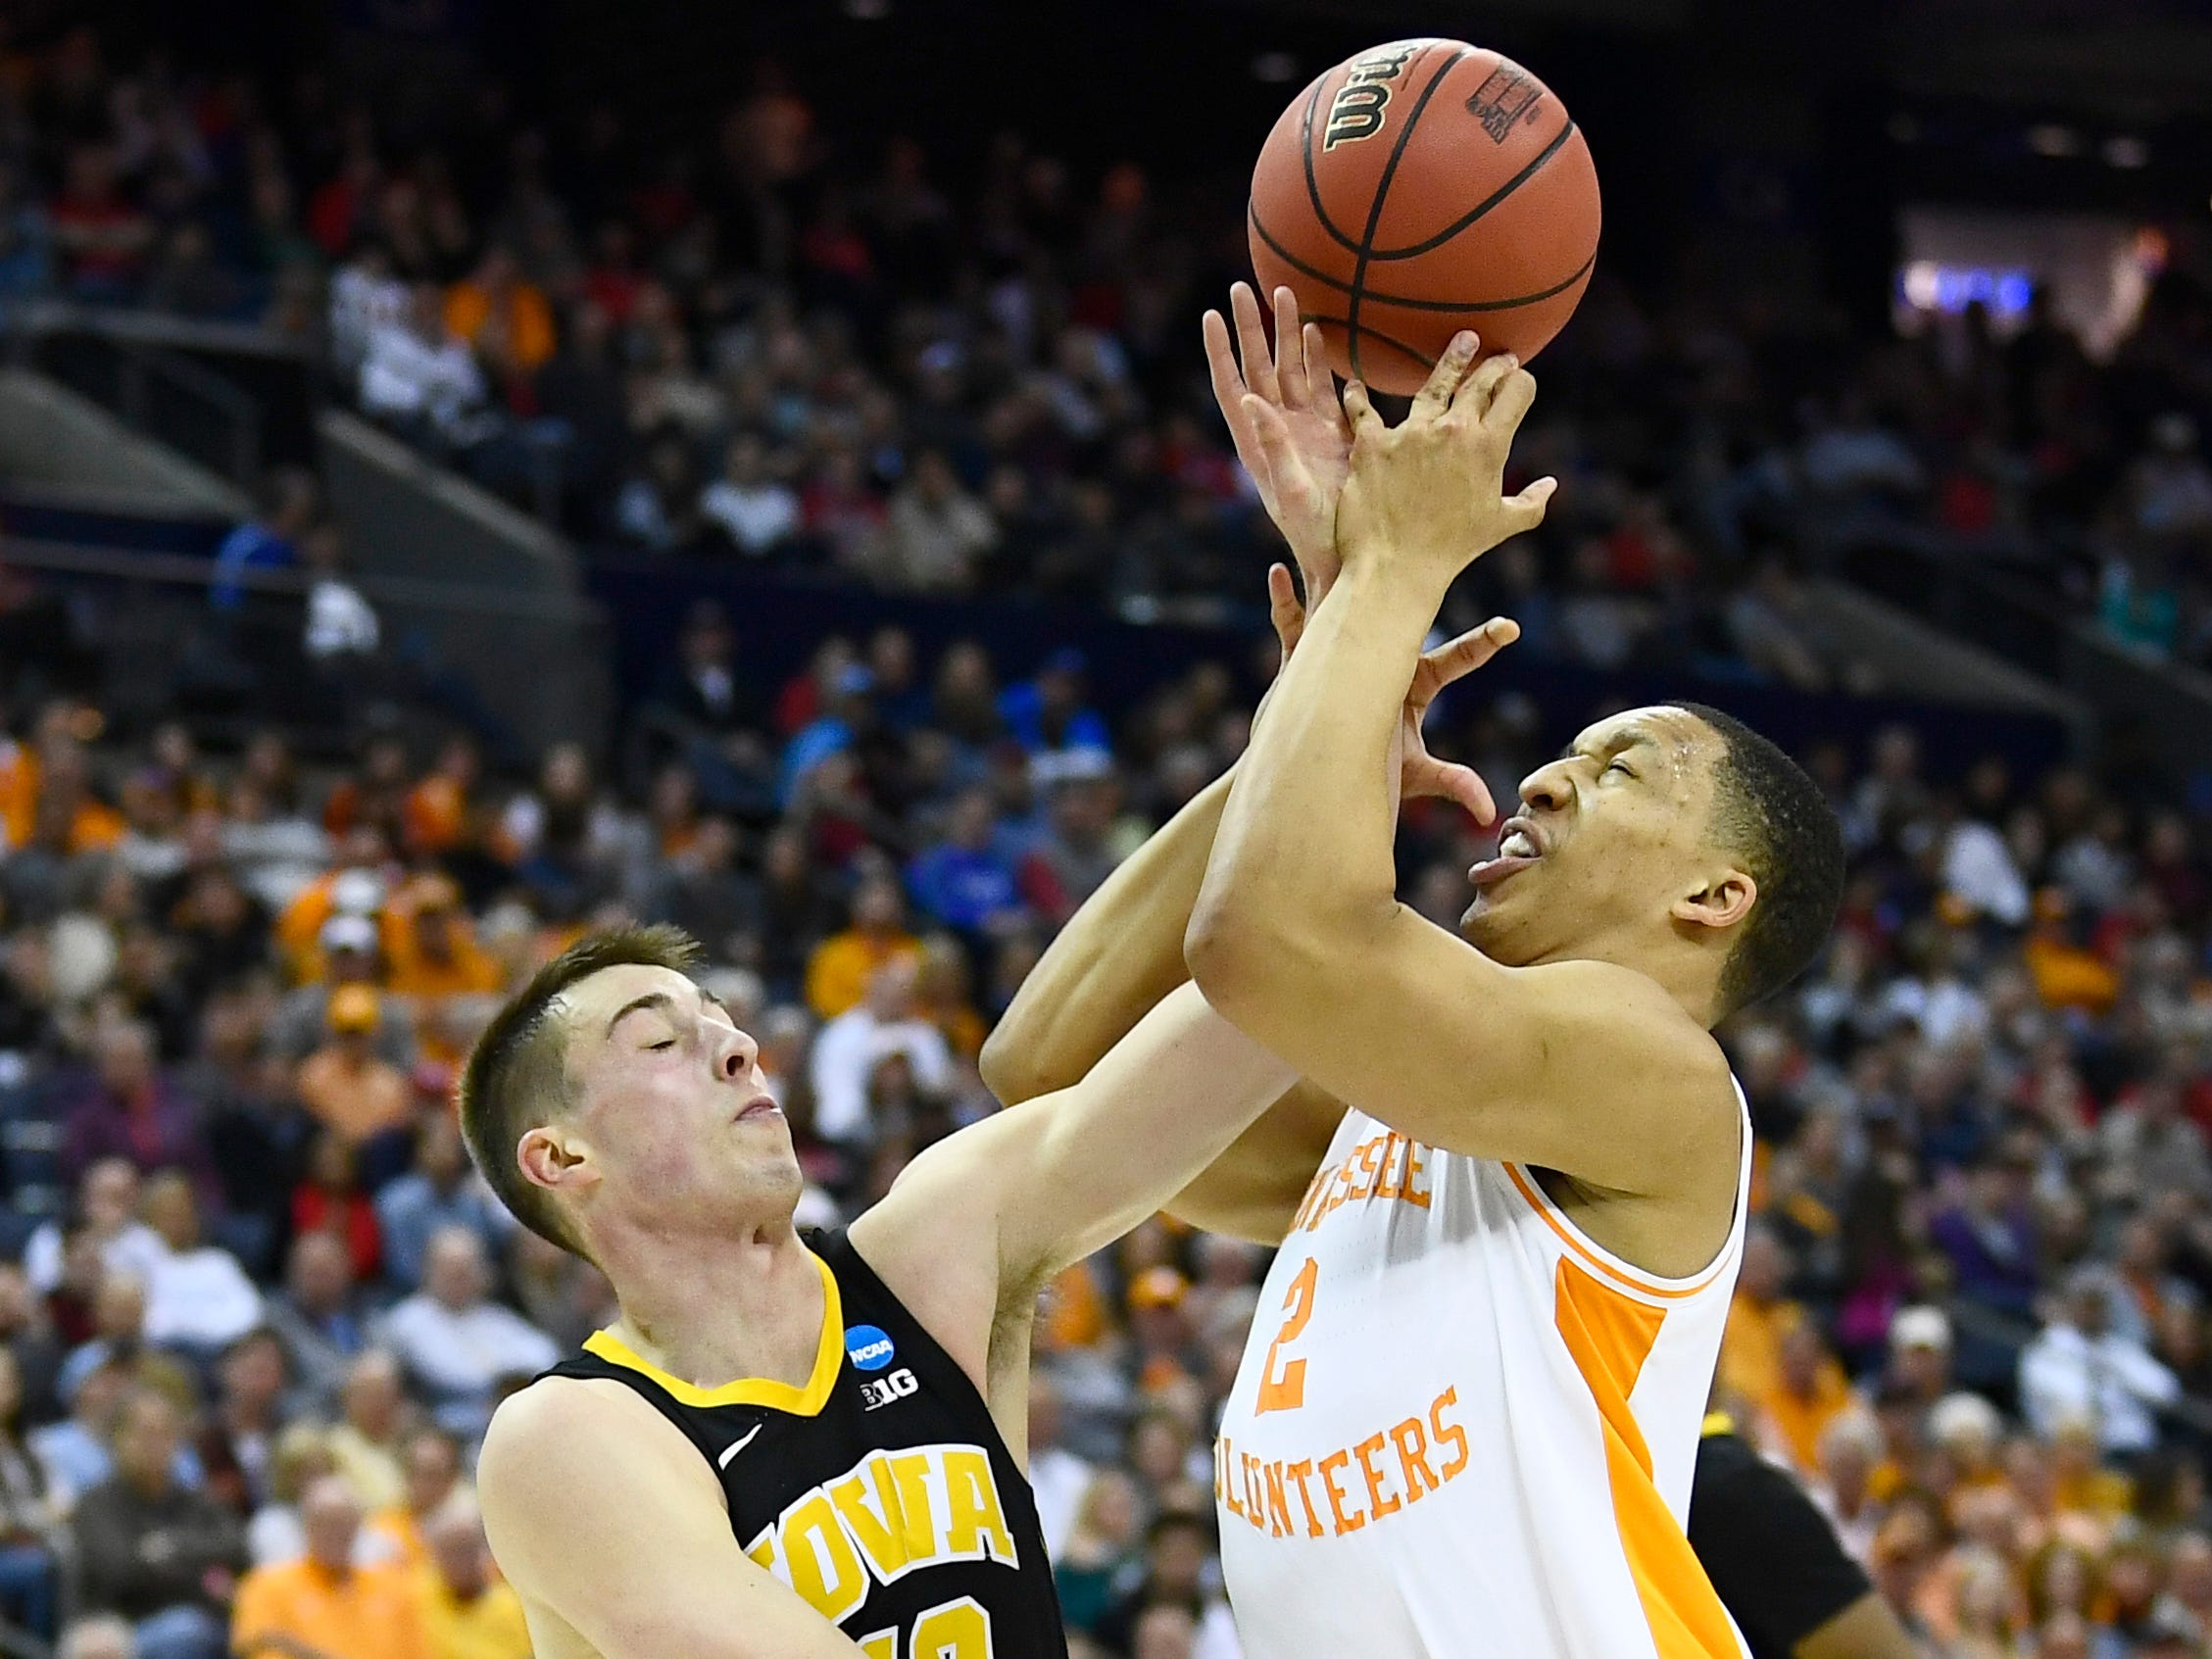 Tennessee forward Grant Williams (2) is fouled by Iowa guard Joe Wieskamp (10) during the first half of the game in the second round of the NCAA Tournament at Nationwide Arena in Columbus, Ohio, Sunday, March 24, 2019.